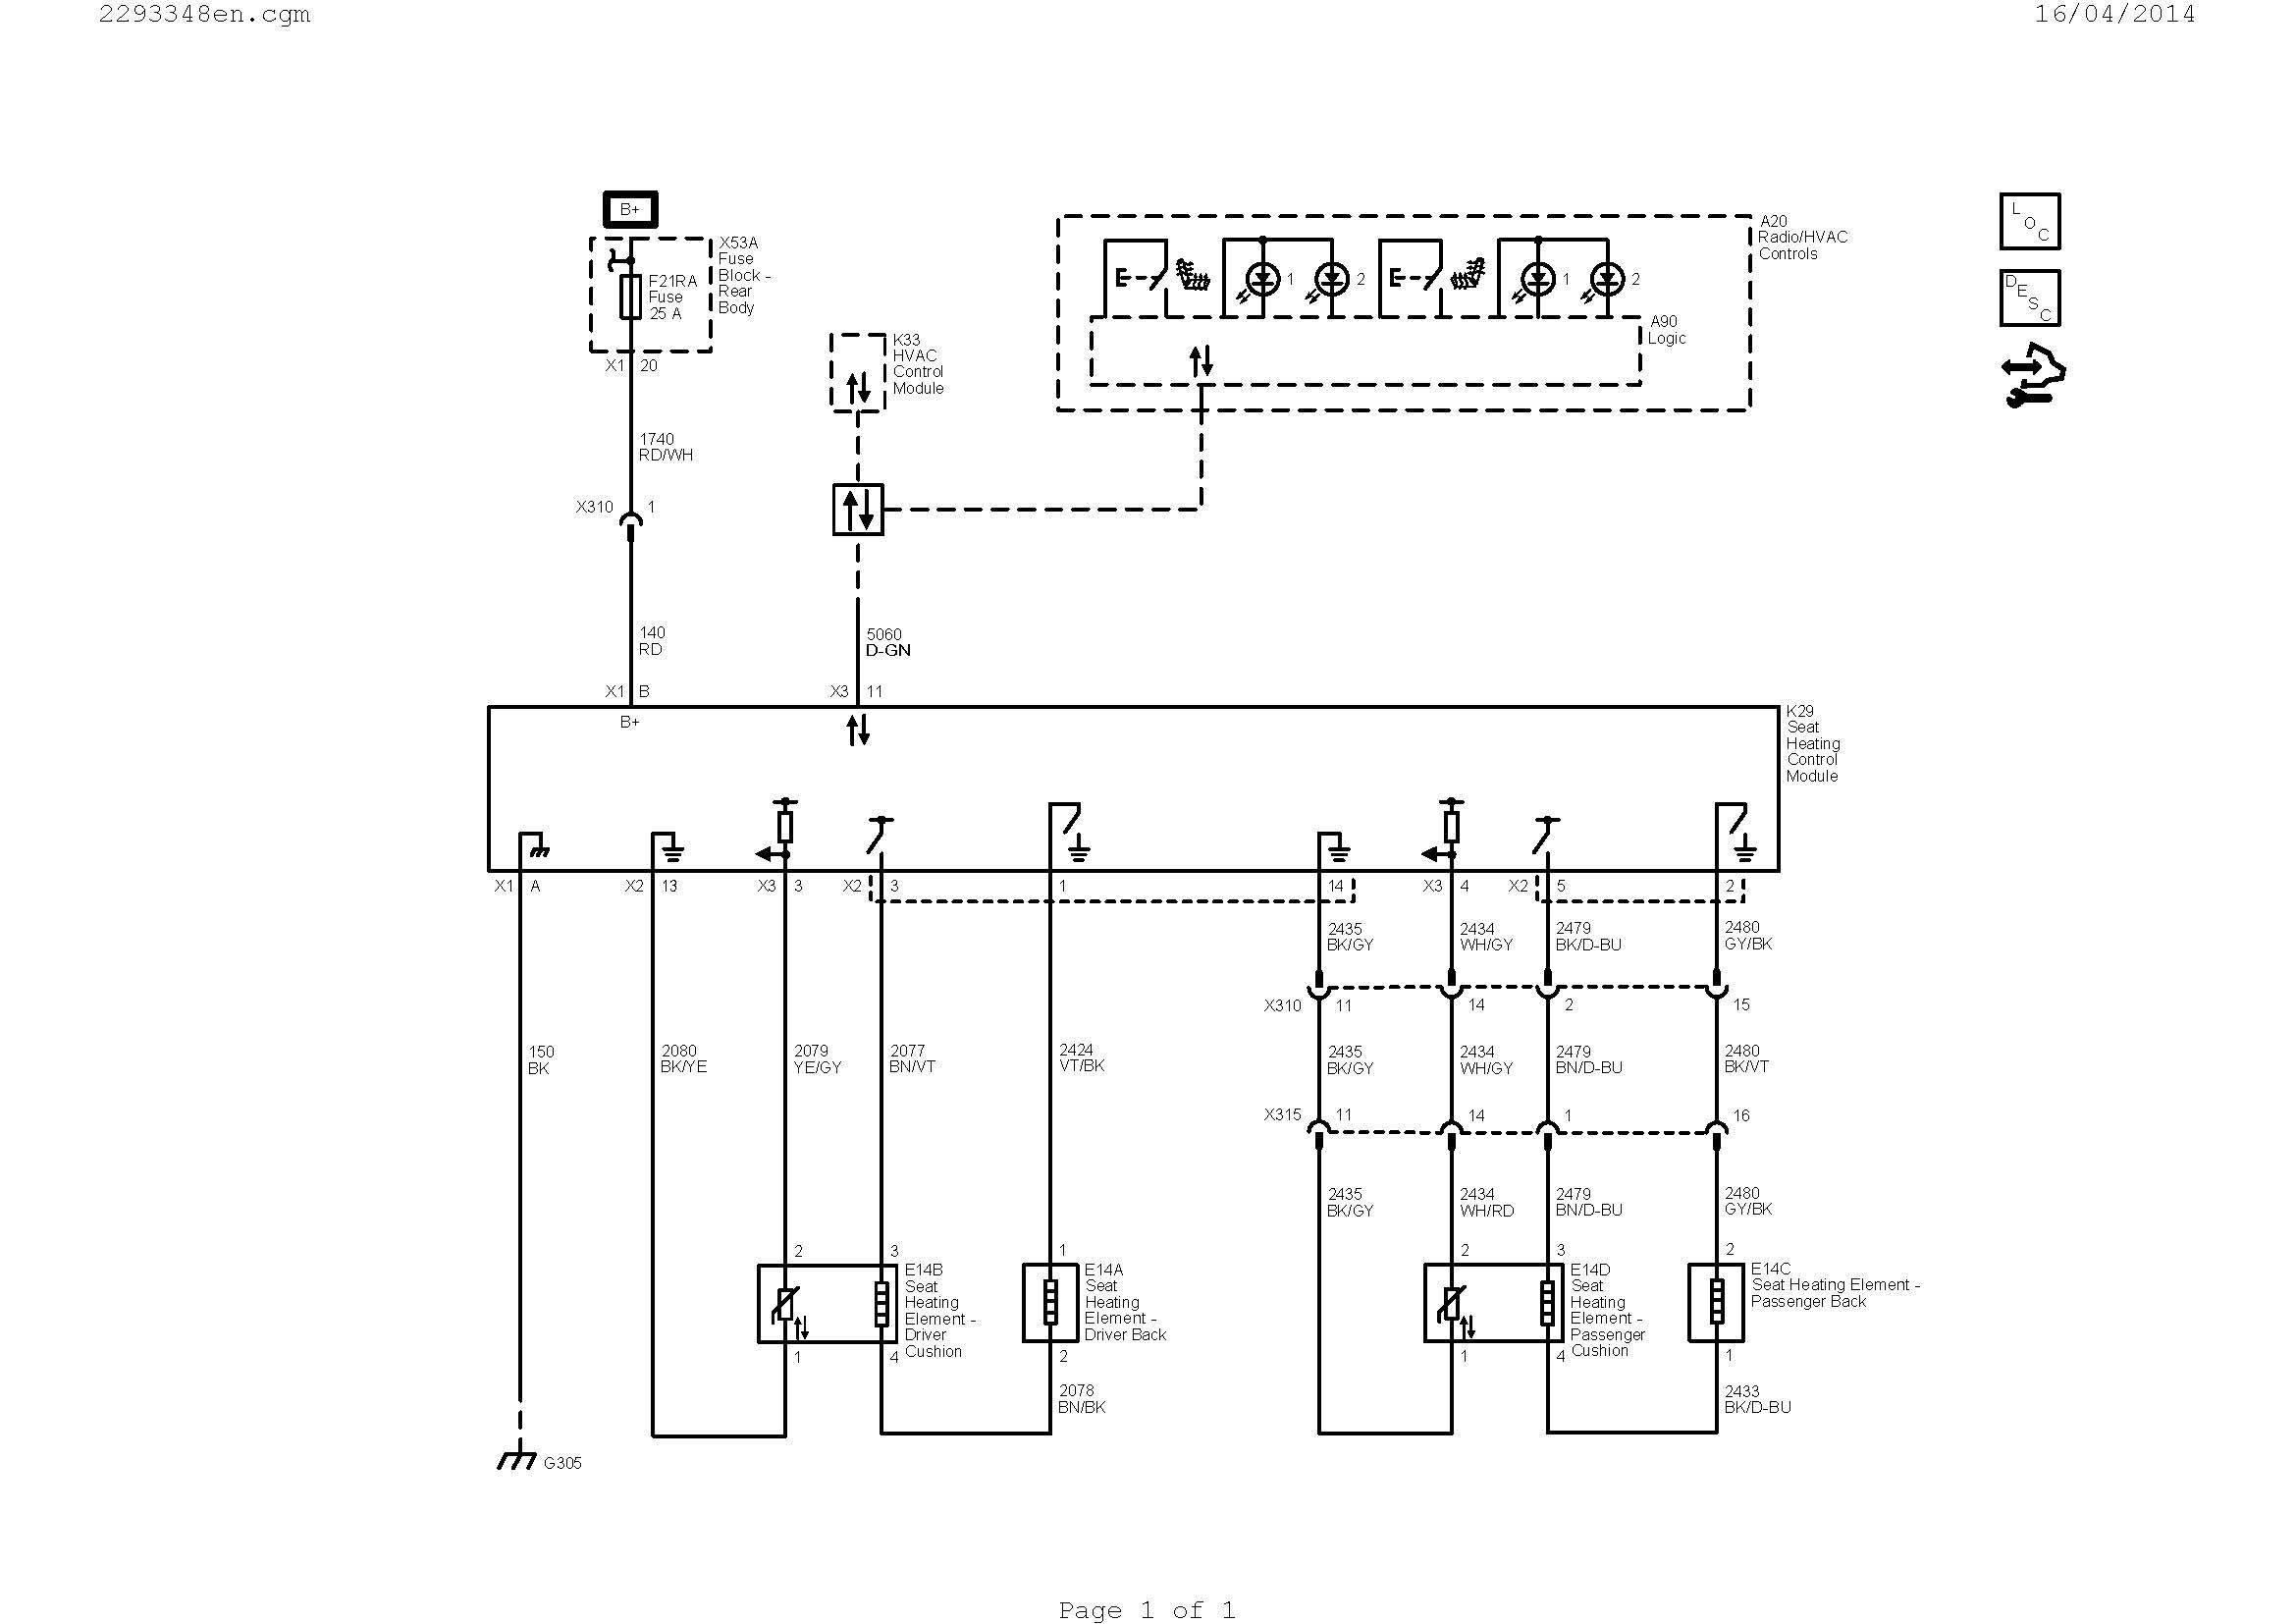 Diagram Of Car Heating System Heated Seats Description and Operation Of Diagram Of Car Heating System